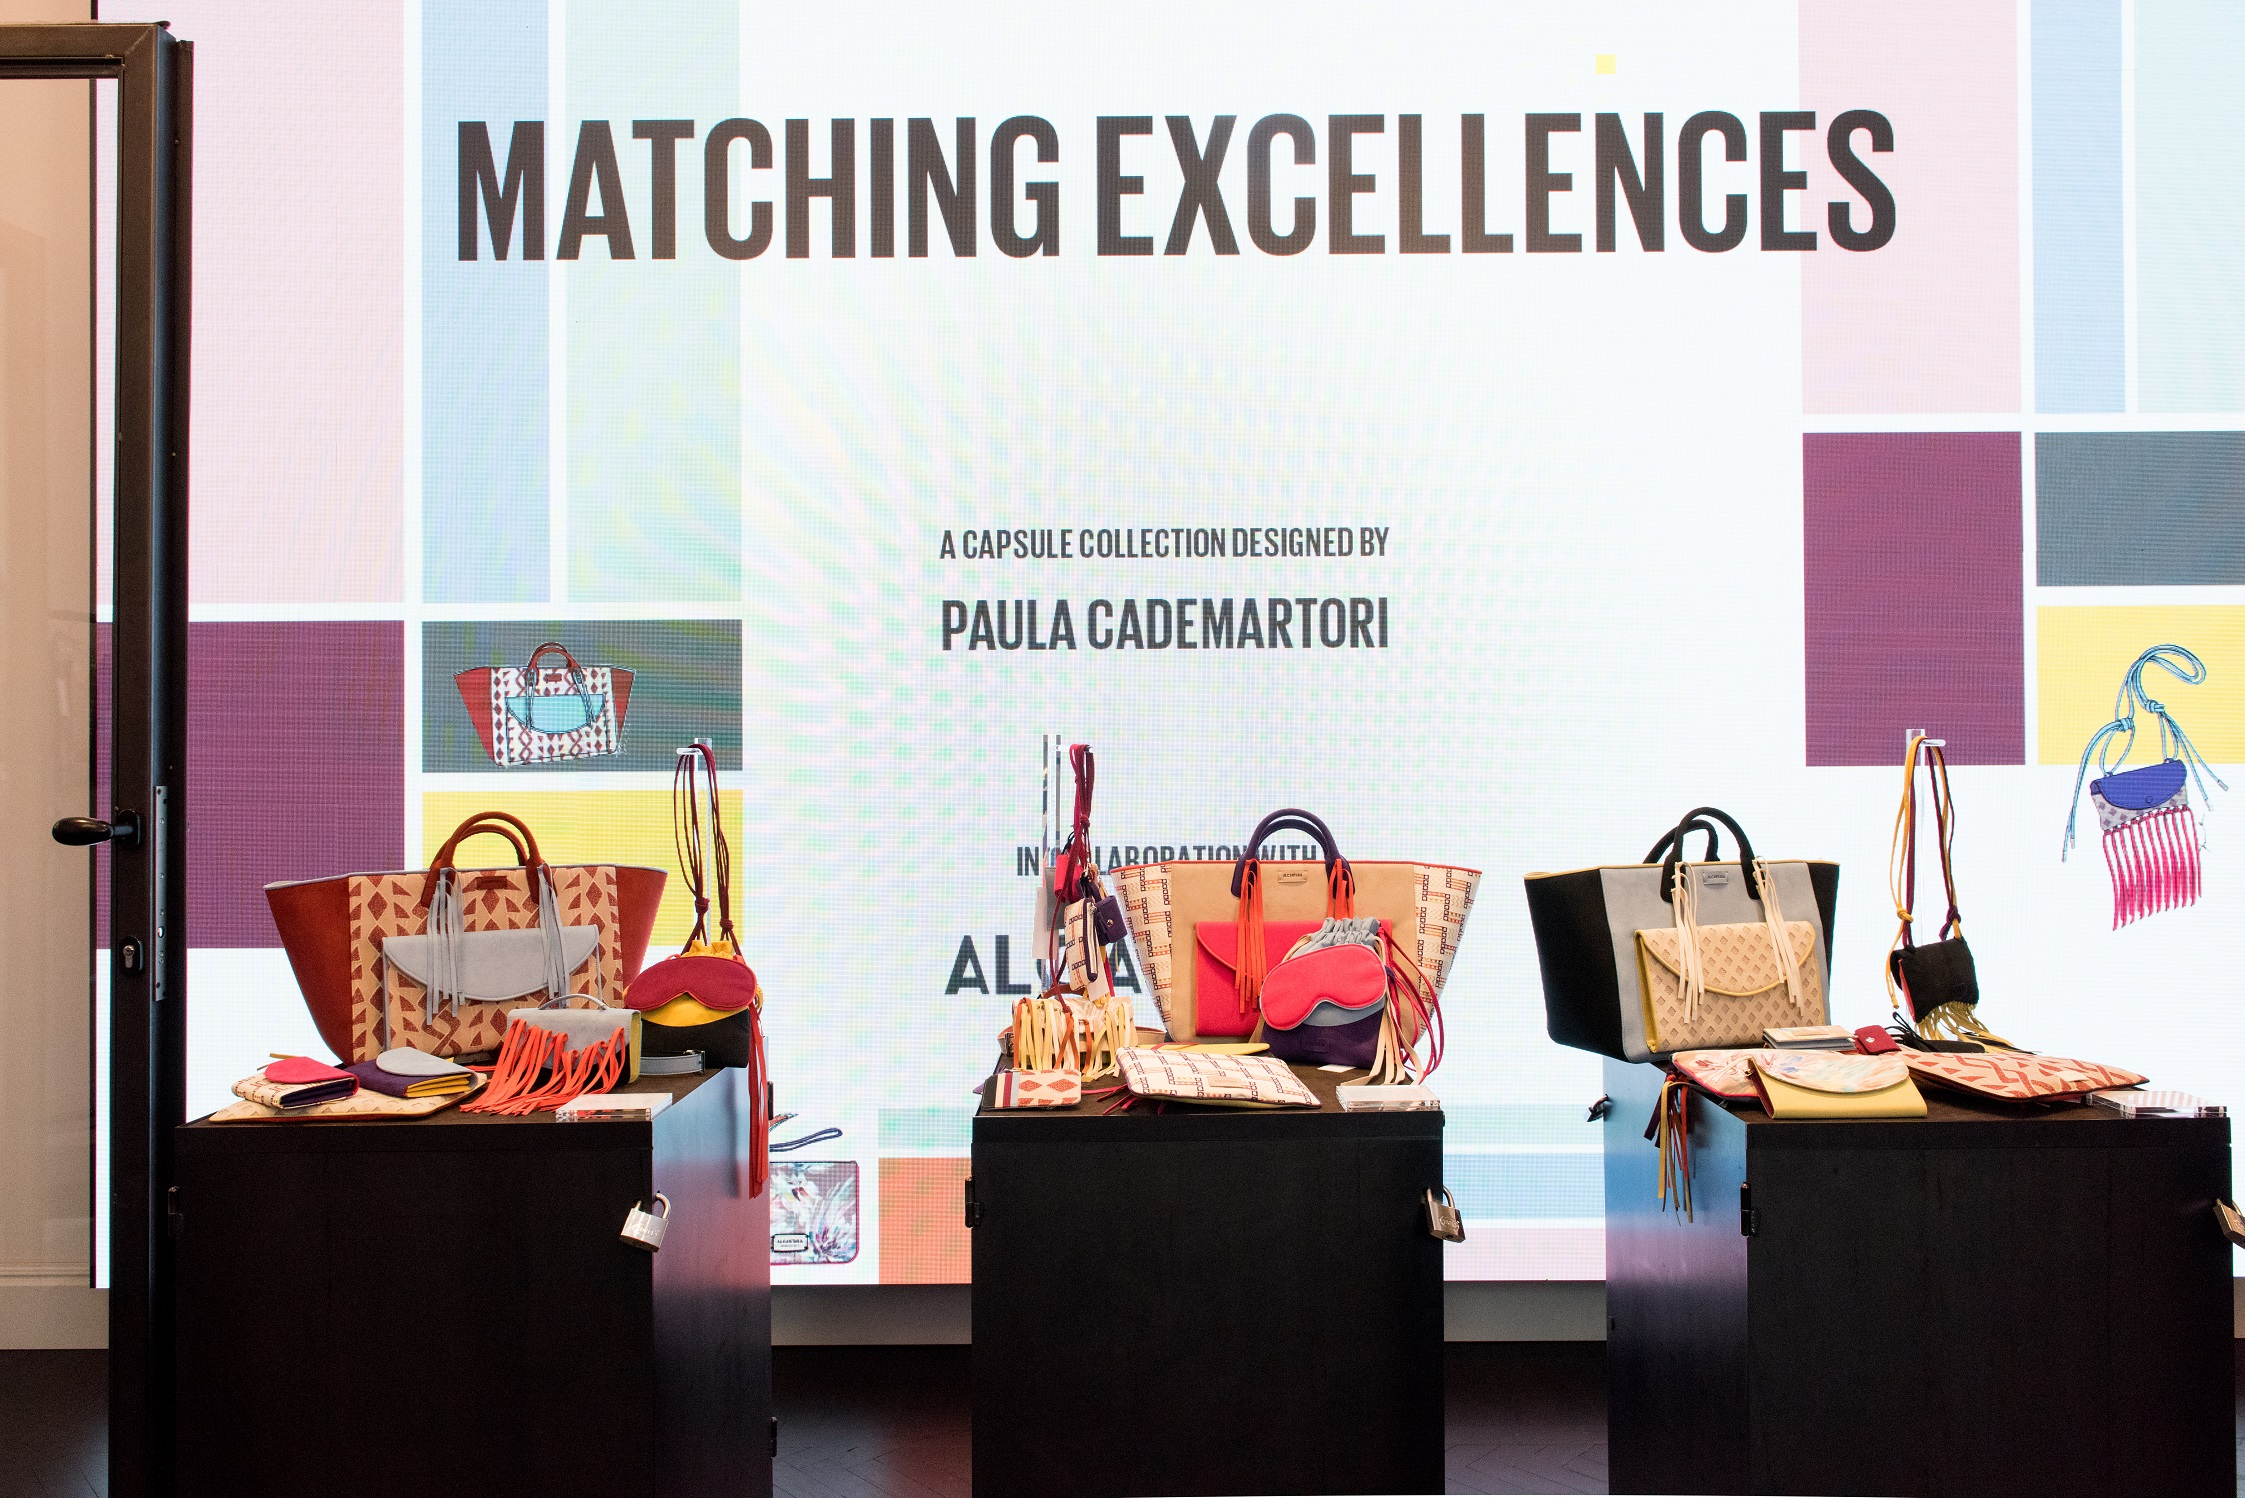 MATCHING EXCELLENCES SPECIAL CAPSULE COLLECTION BY PAULA CADEMARTORI